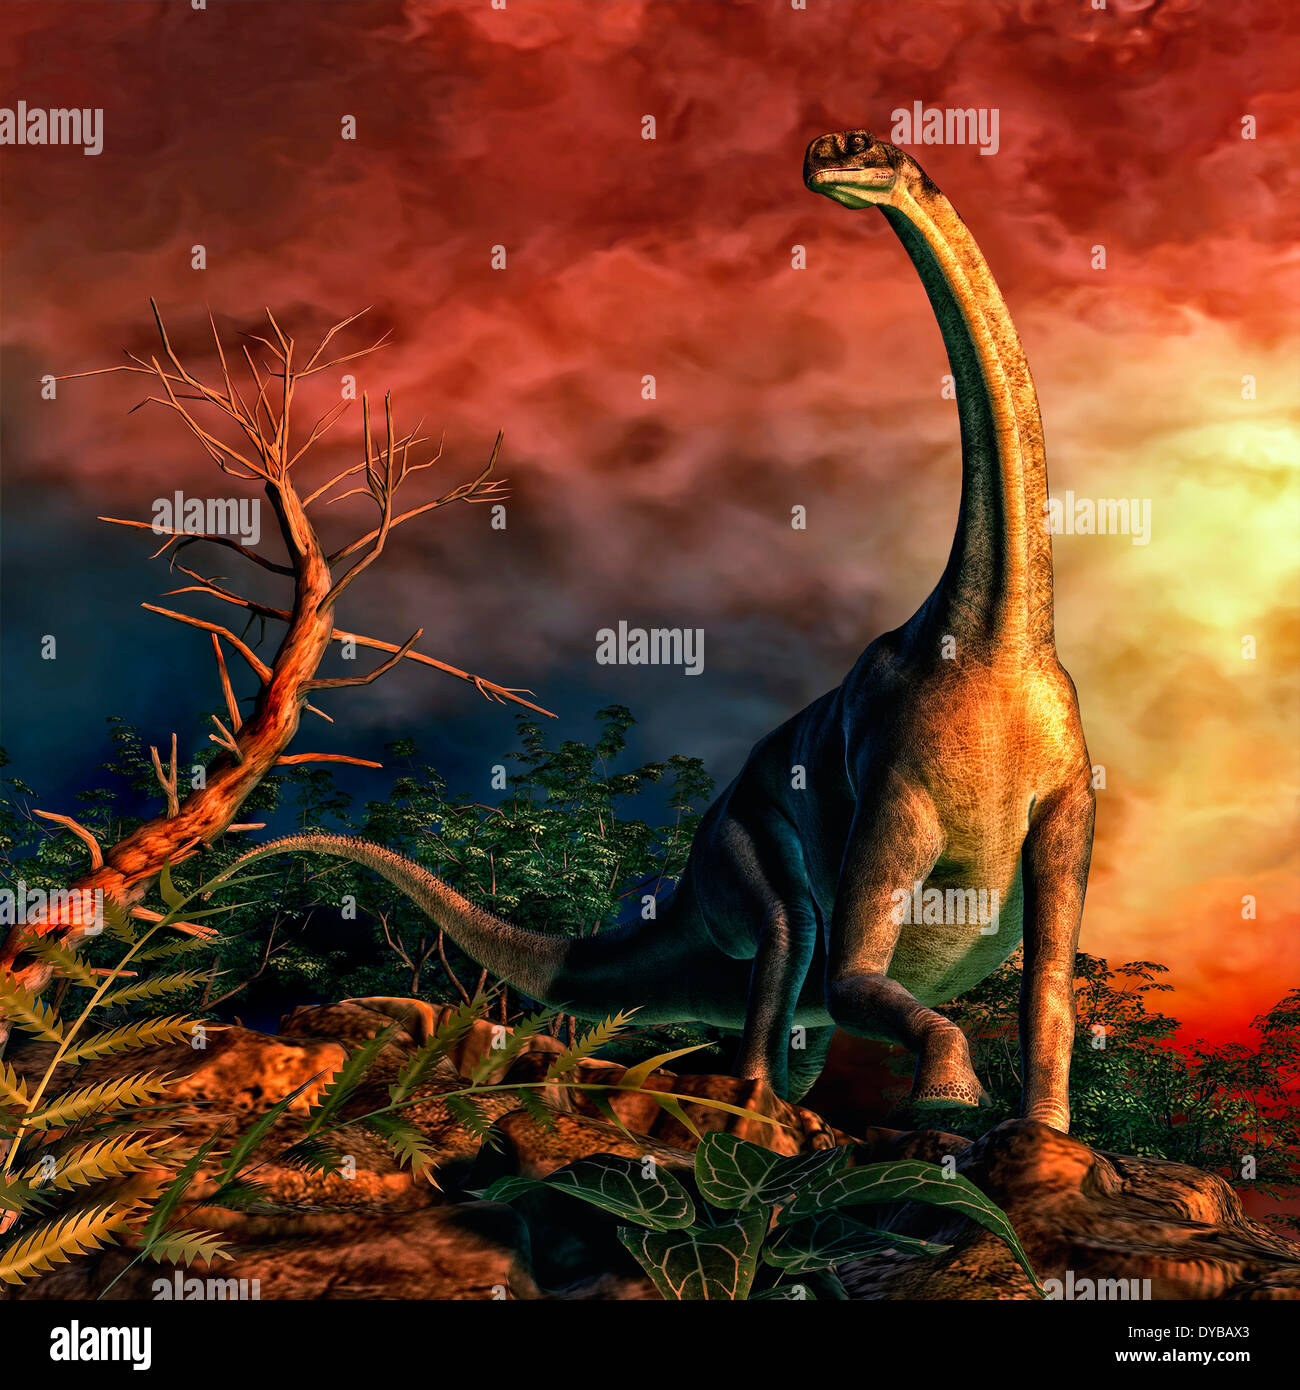 Jobaria was a sauropod dinosaur that lived during the middle Jurassic Period. Stock Photo